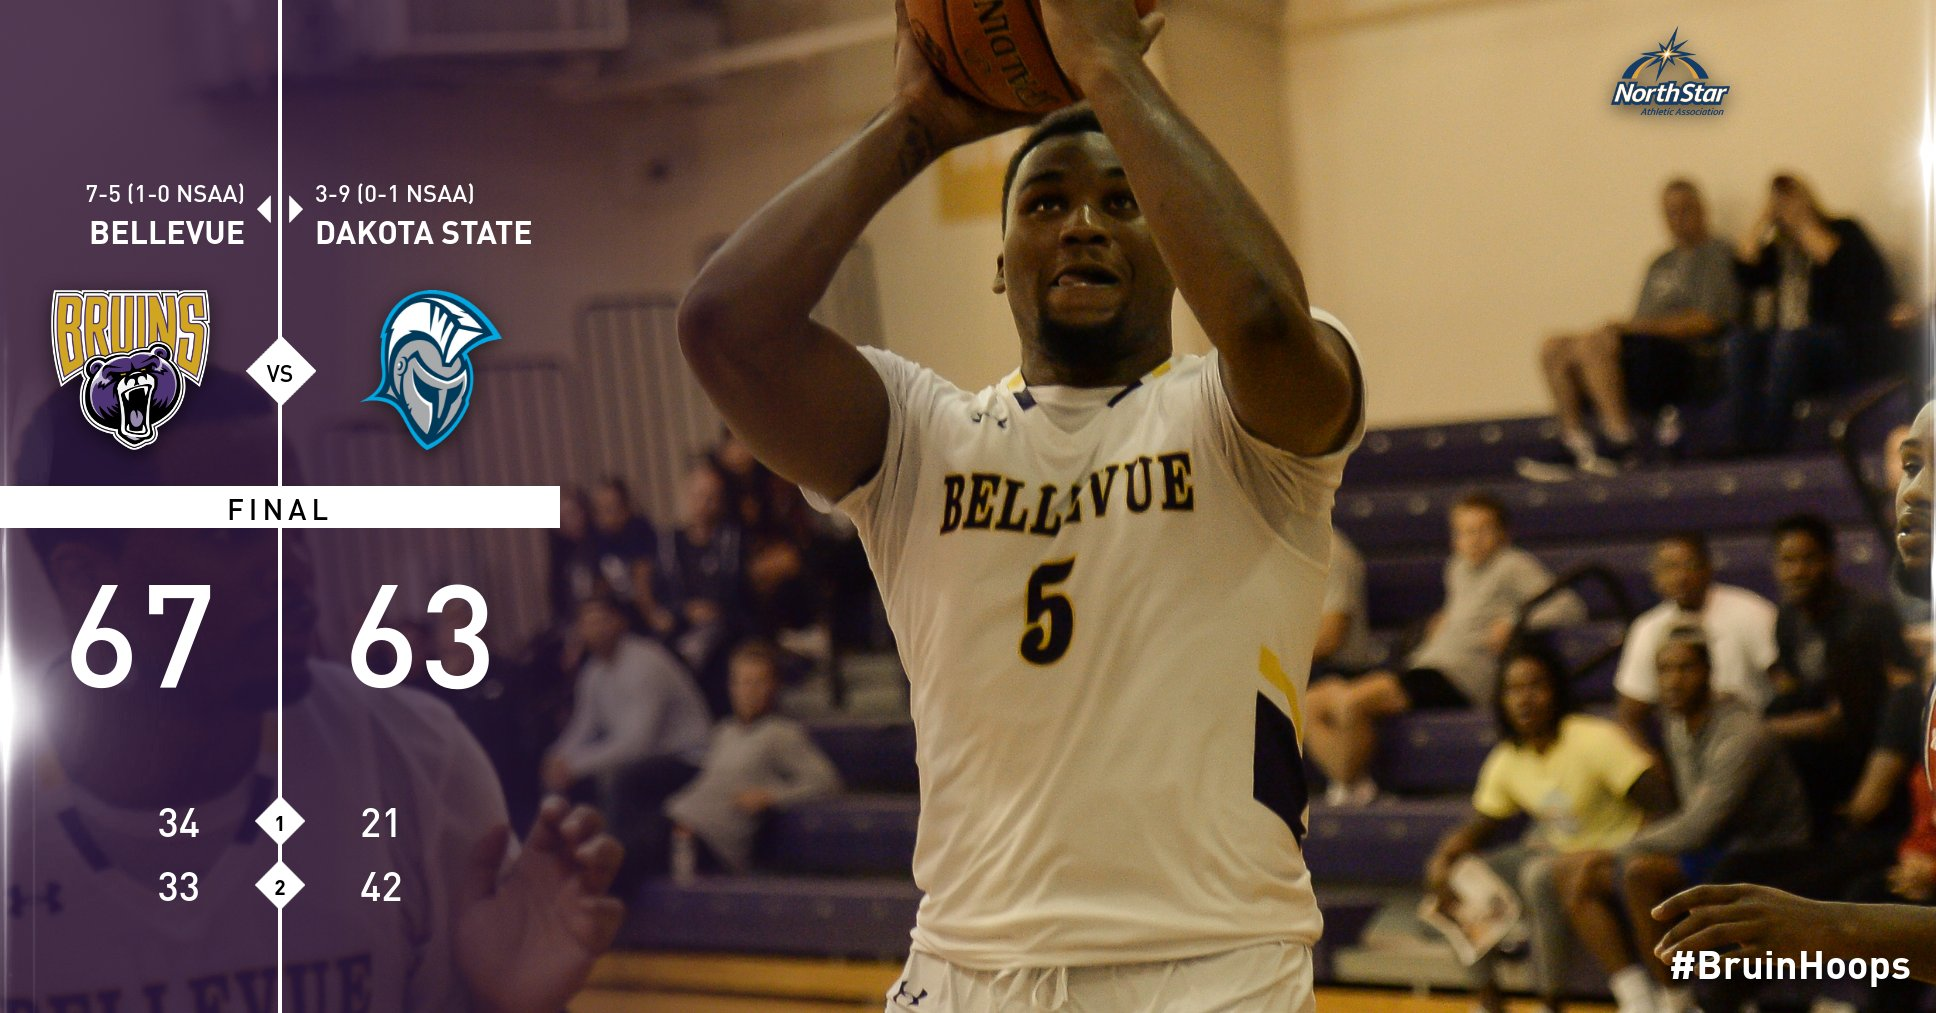 BU opens NSAA play with 67-63 win over Trojans